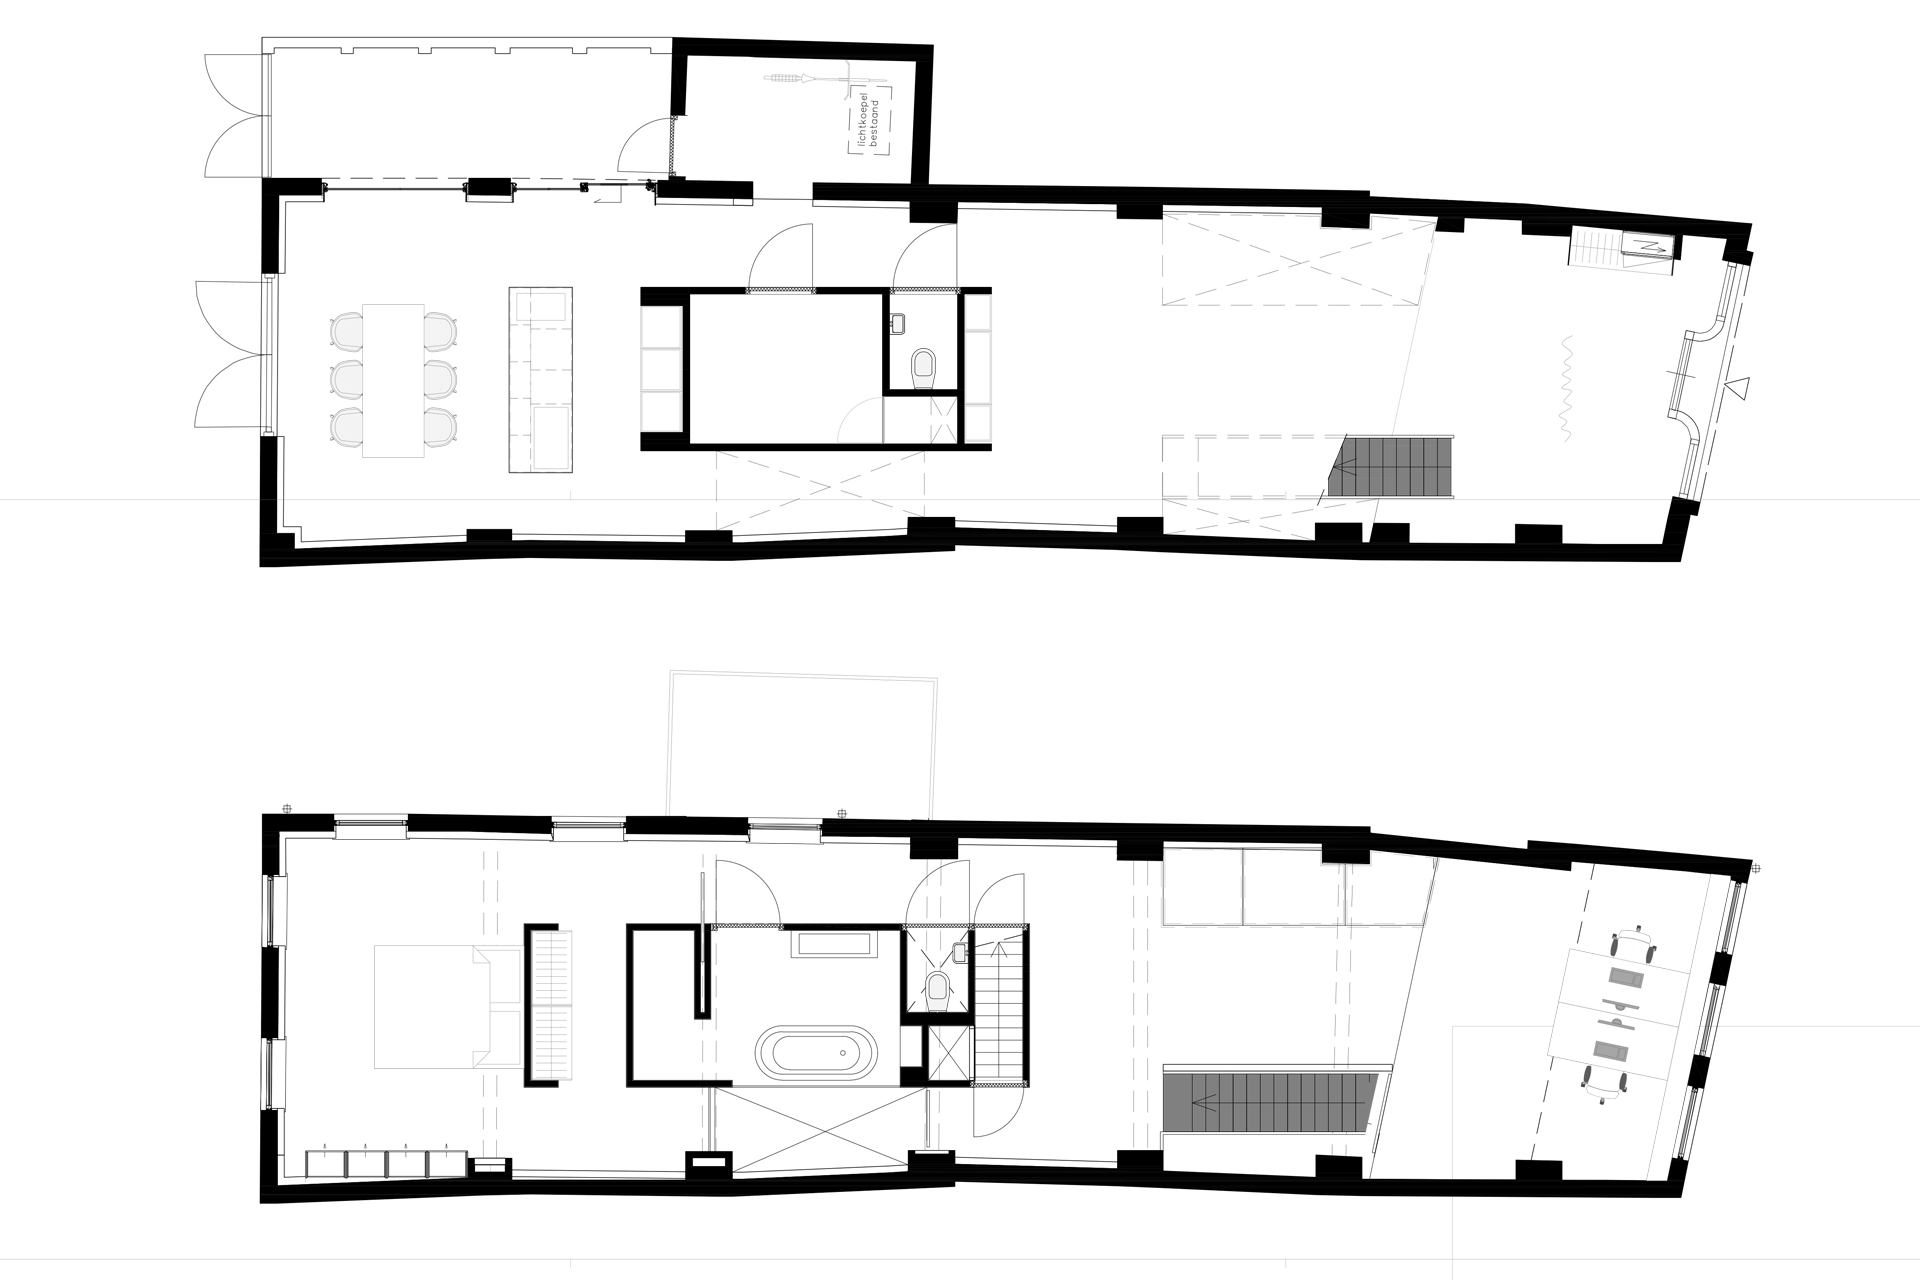 Loft EVA architecten 13 floorplans